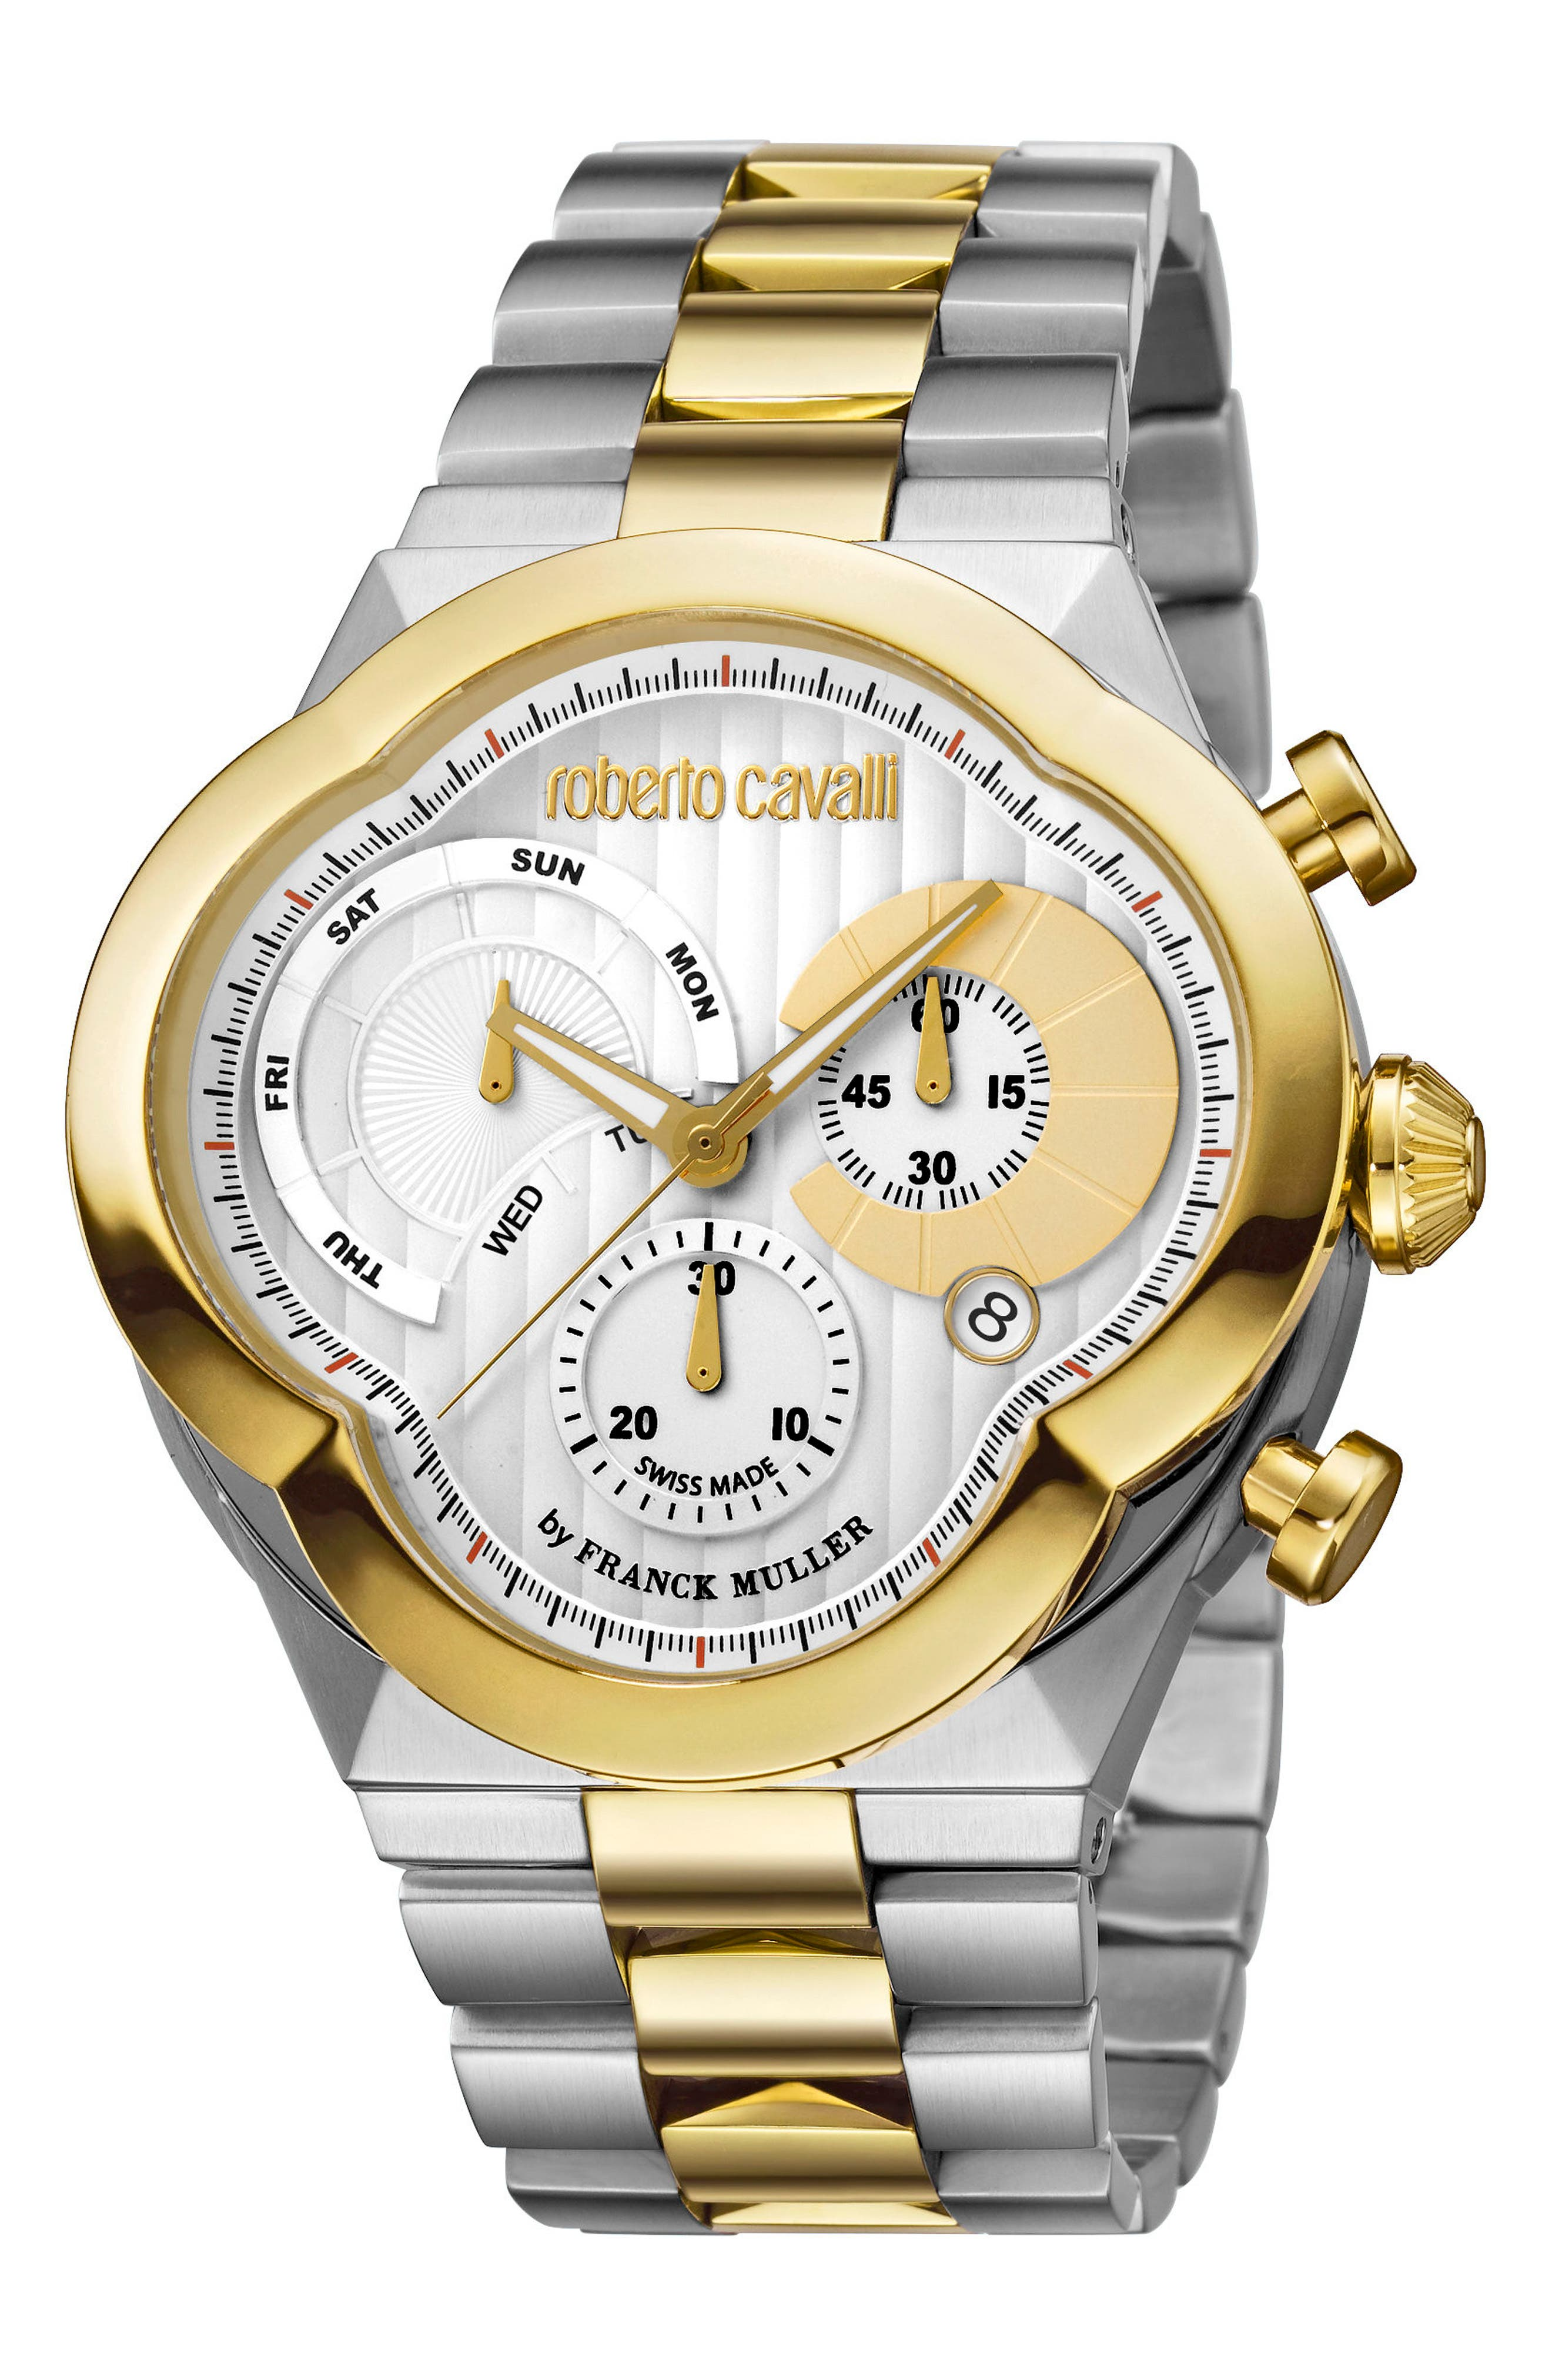 ROBERTO CAVALLI BY FRANCK MULLER Clover Chronograph Bracelet Watch, 47mm